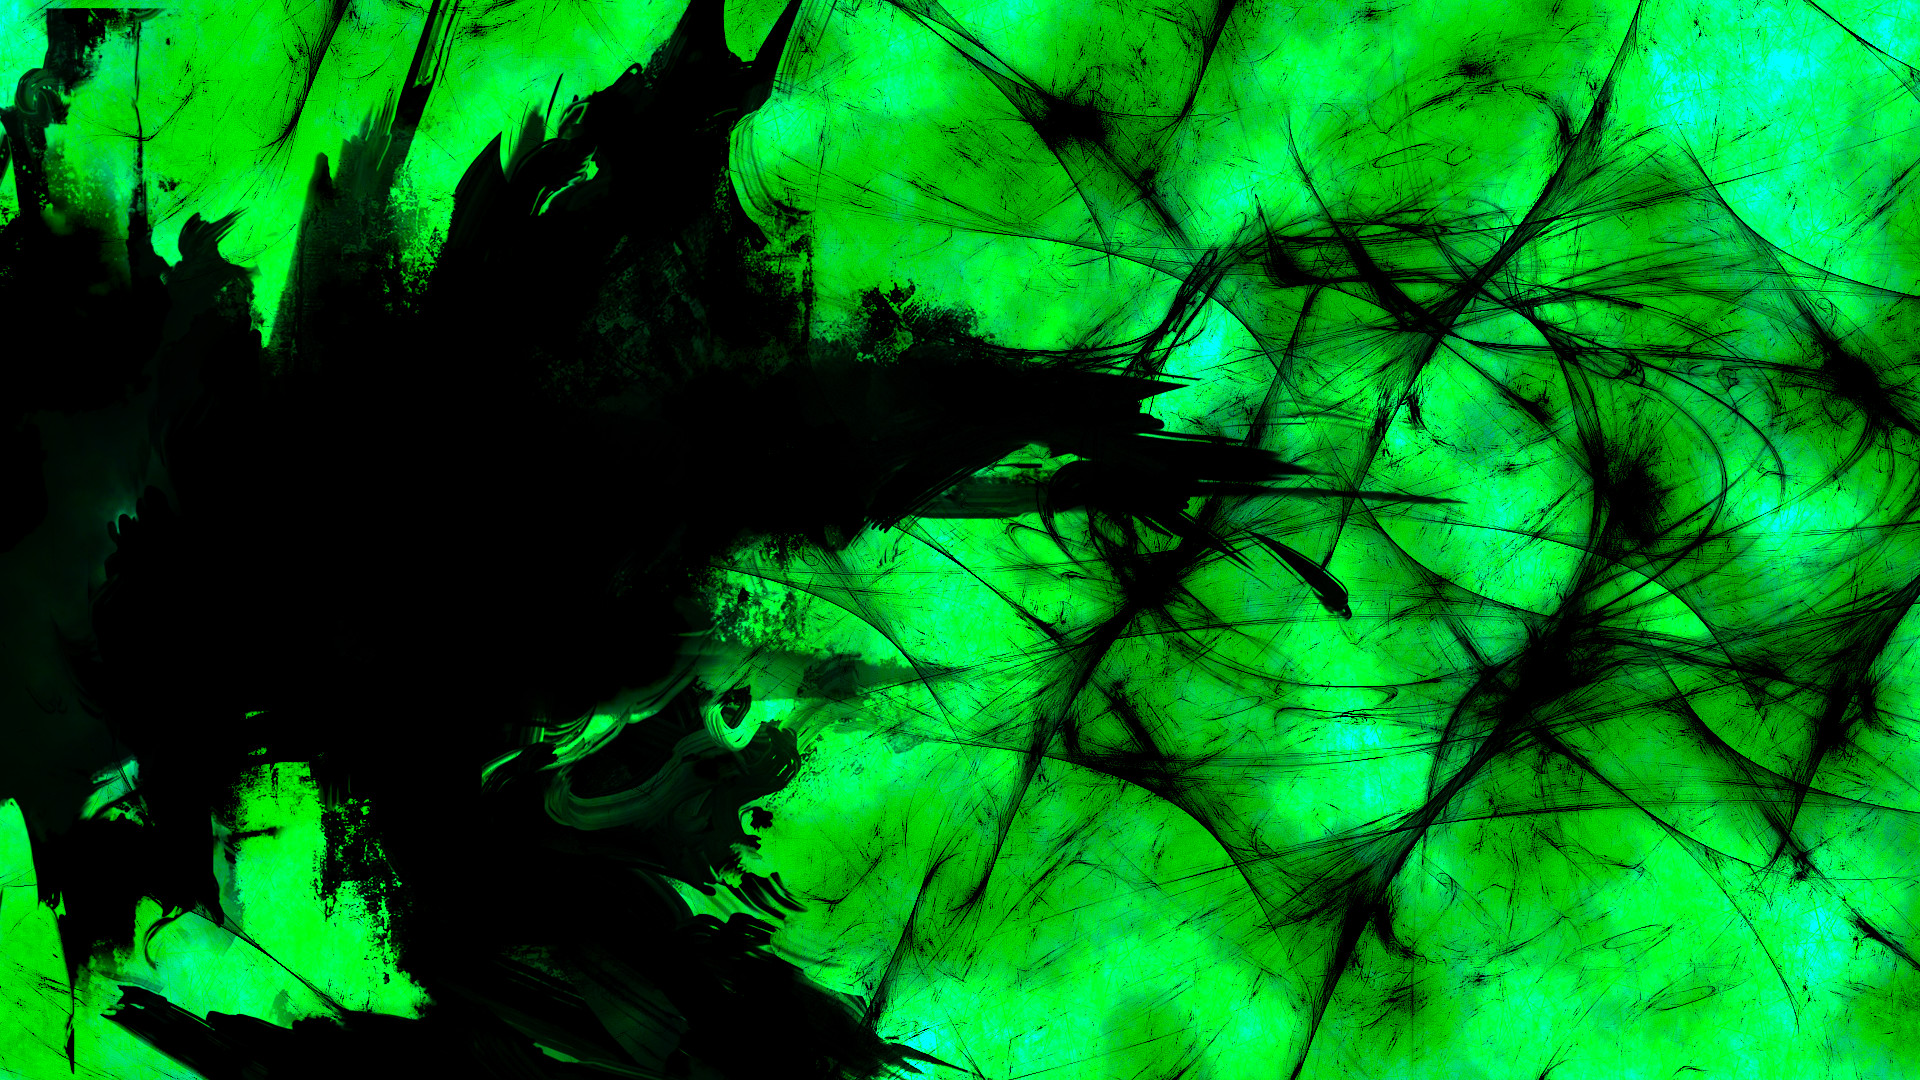 1920x1080 Top HDQ Green Abstract Images